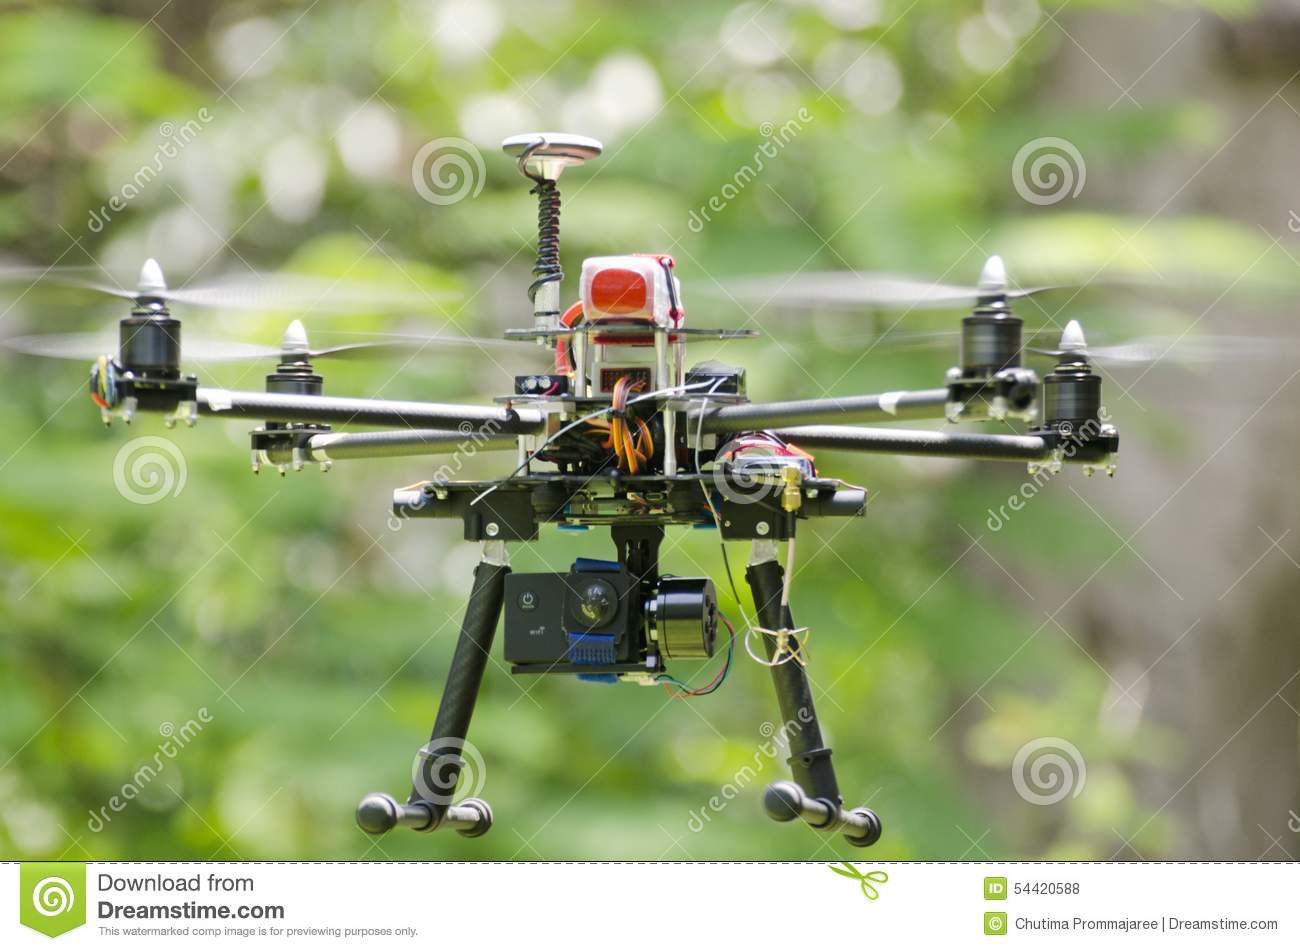 Homemade Carbon Drone Stock Photo Image Of Technology